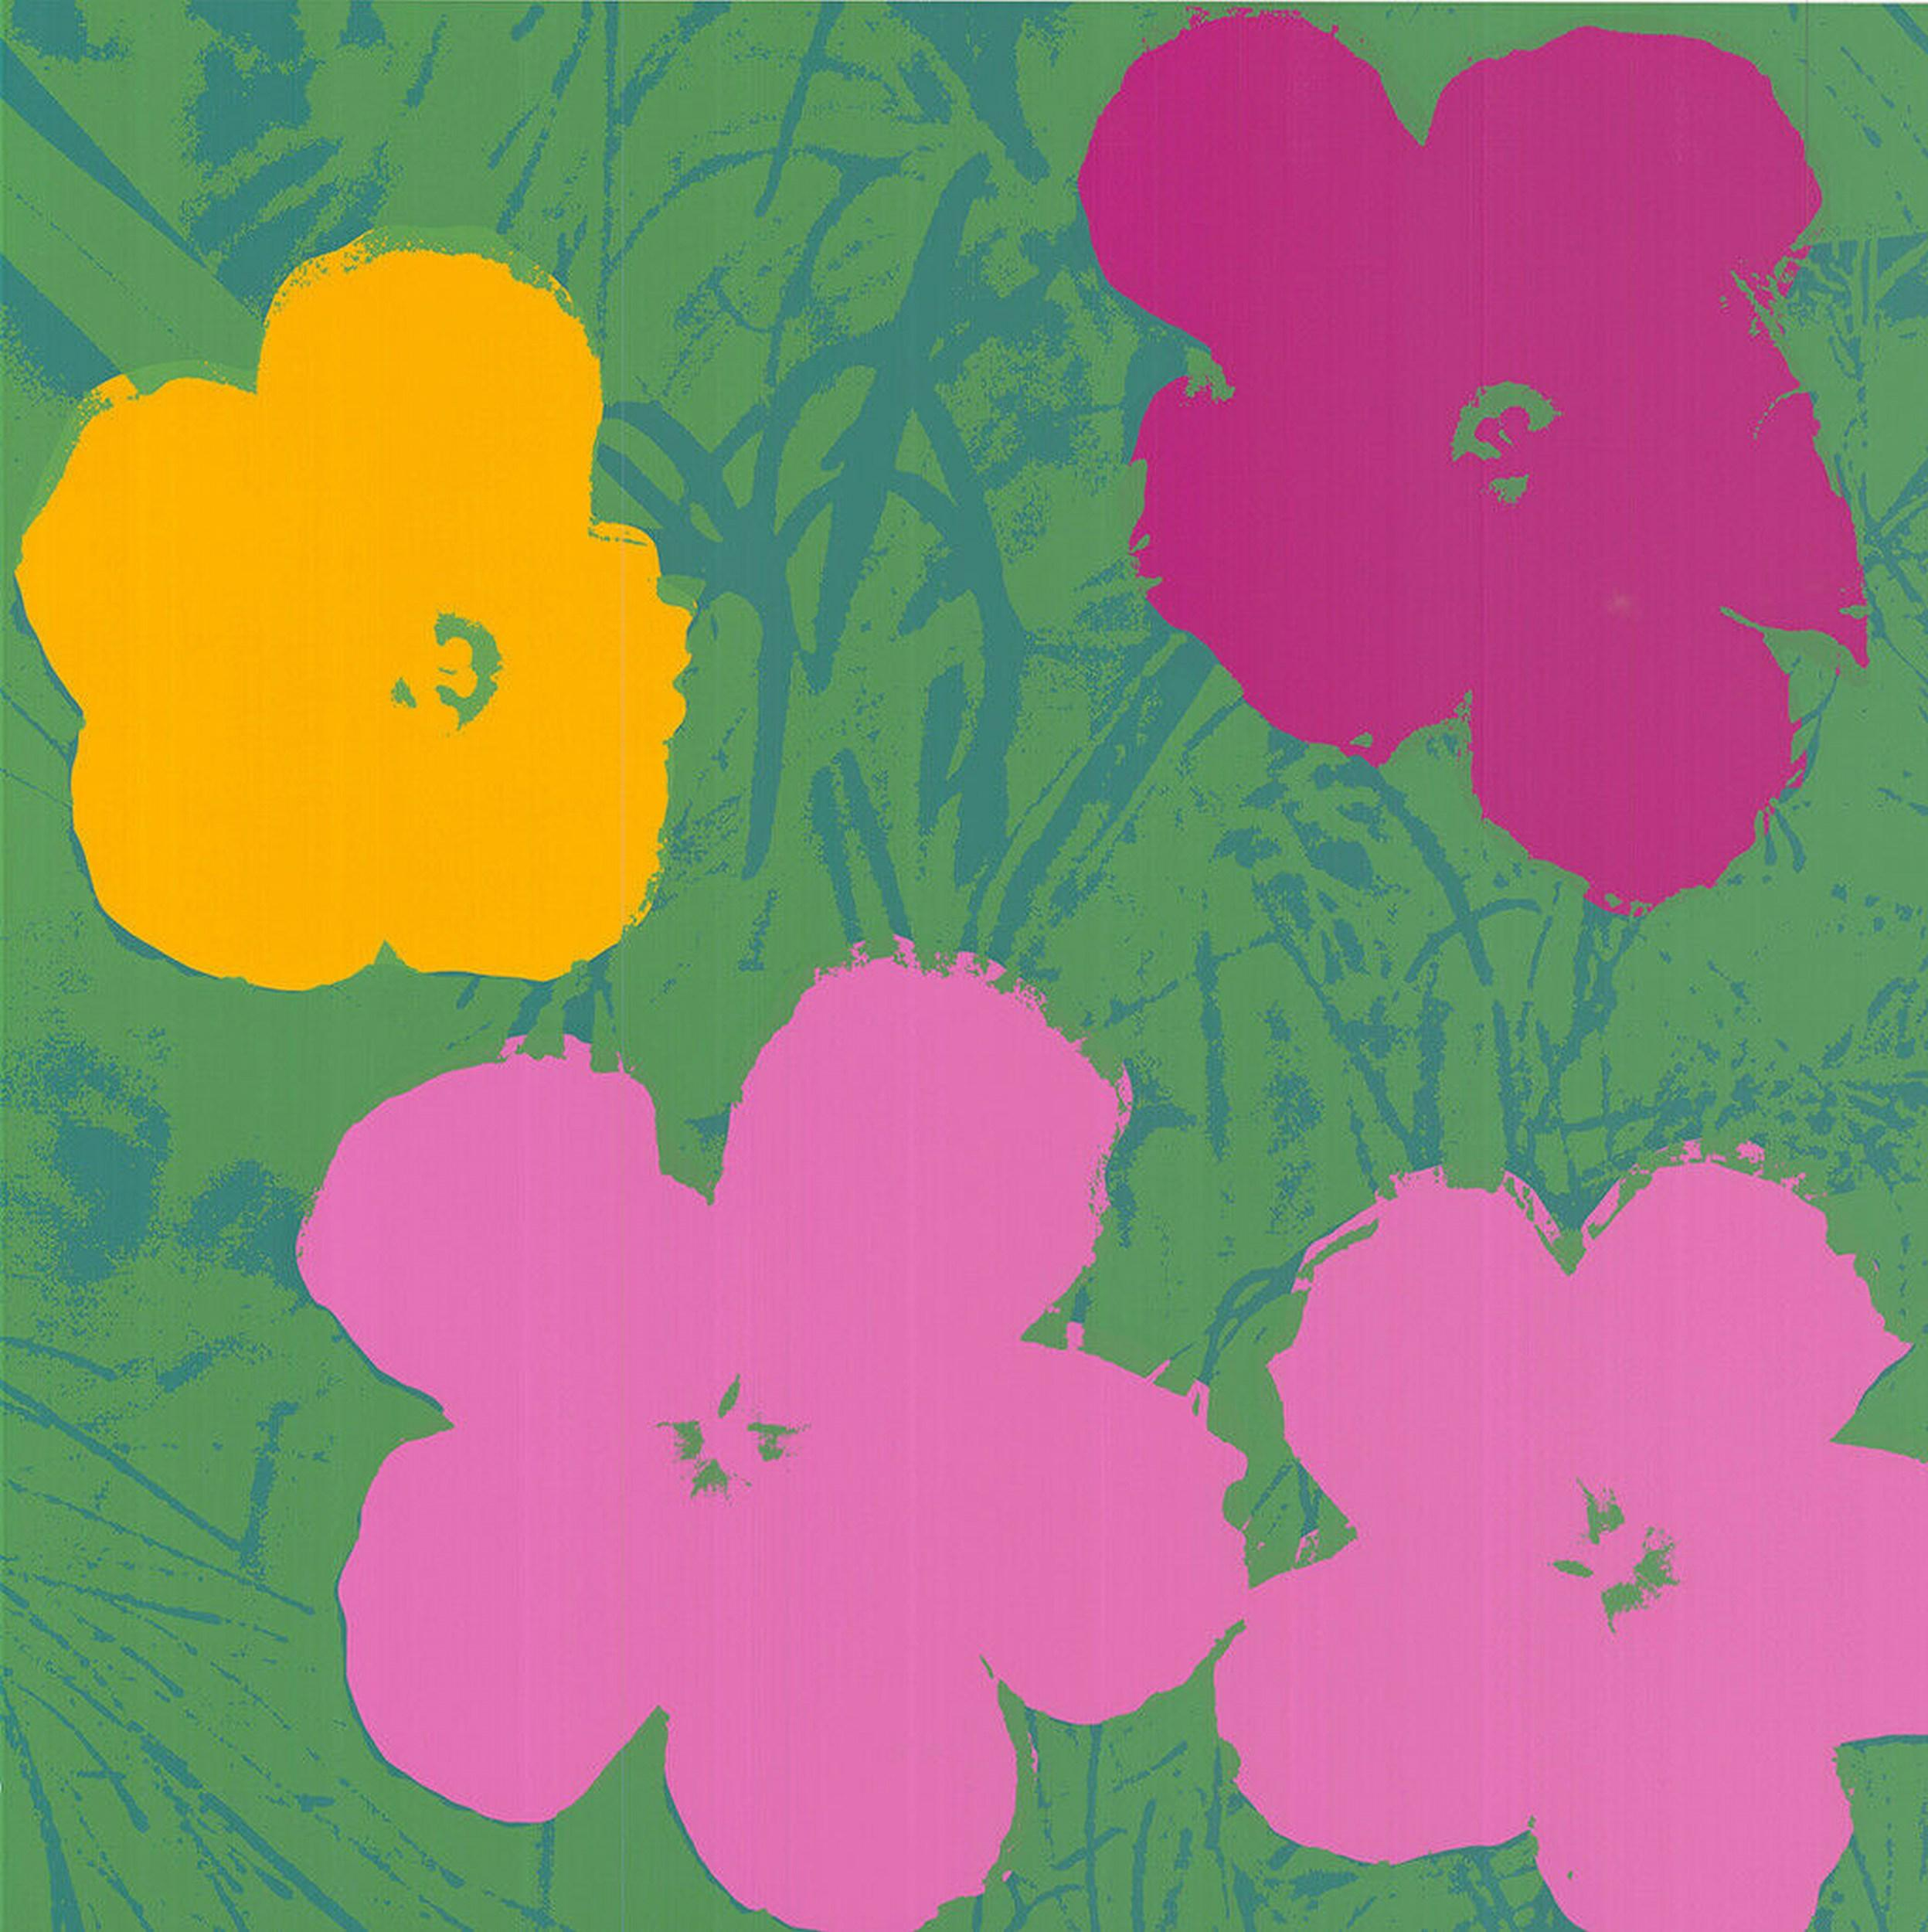 Flowers (after Andy Warhol  Yellow, Pink, Purple Hues - Pop Art)